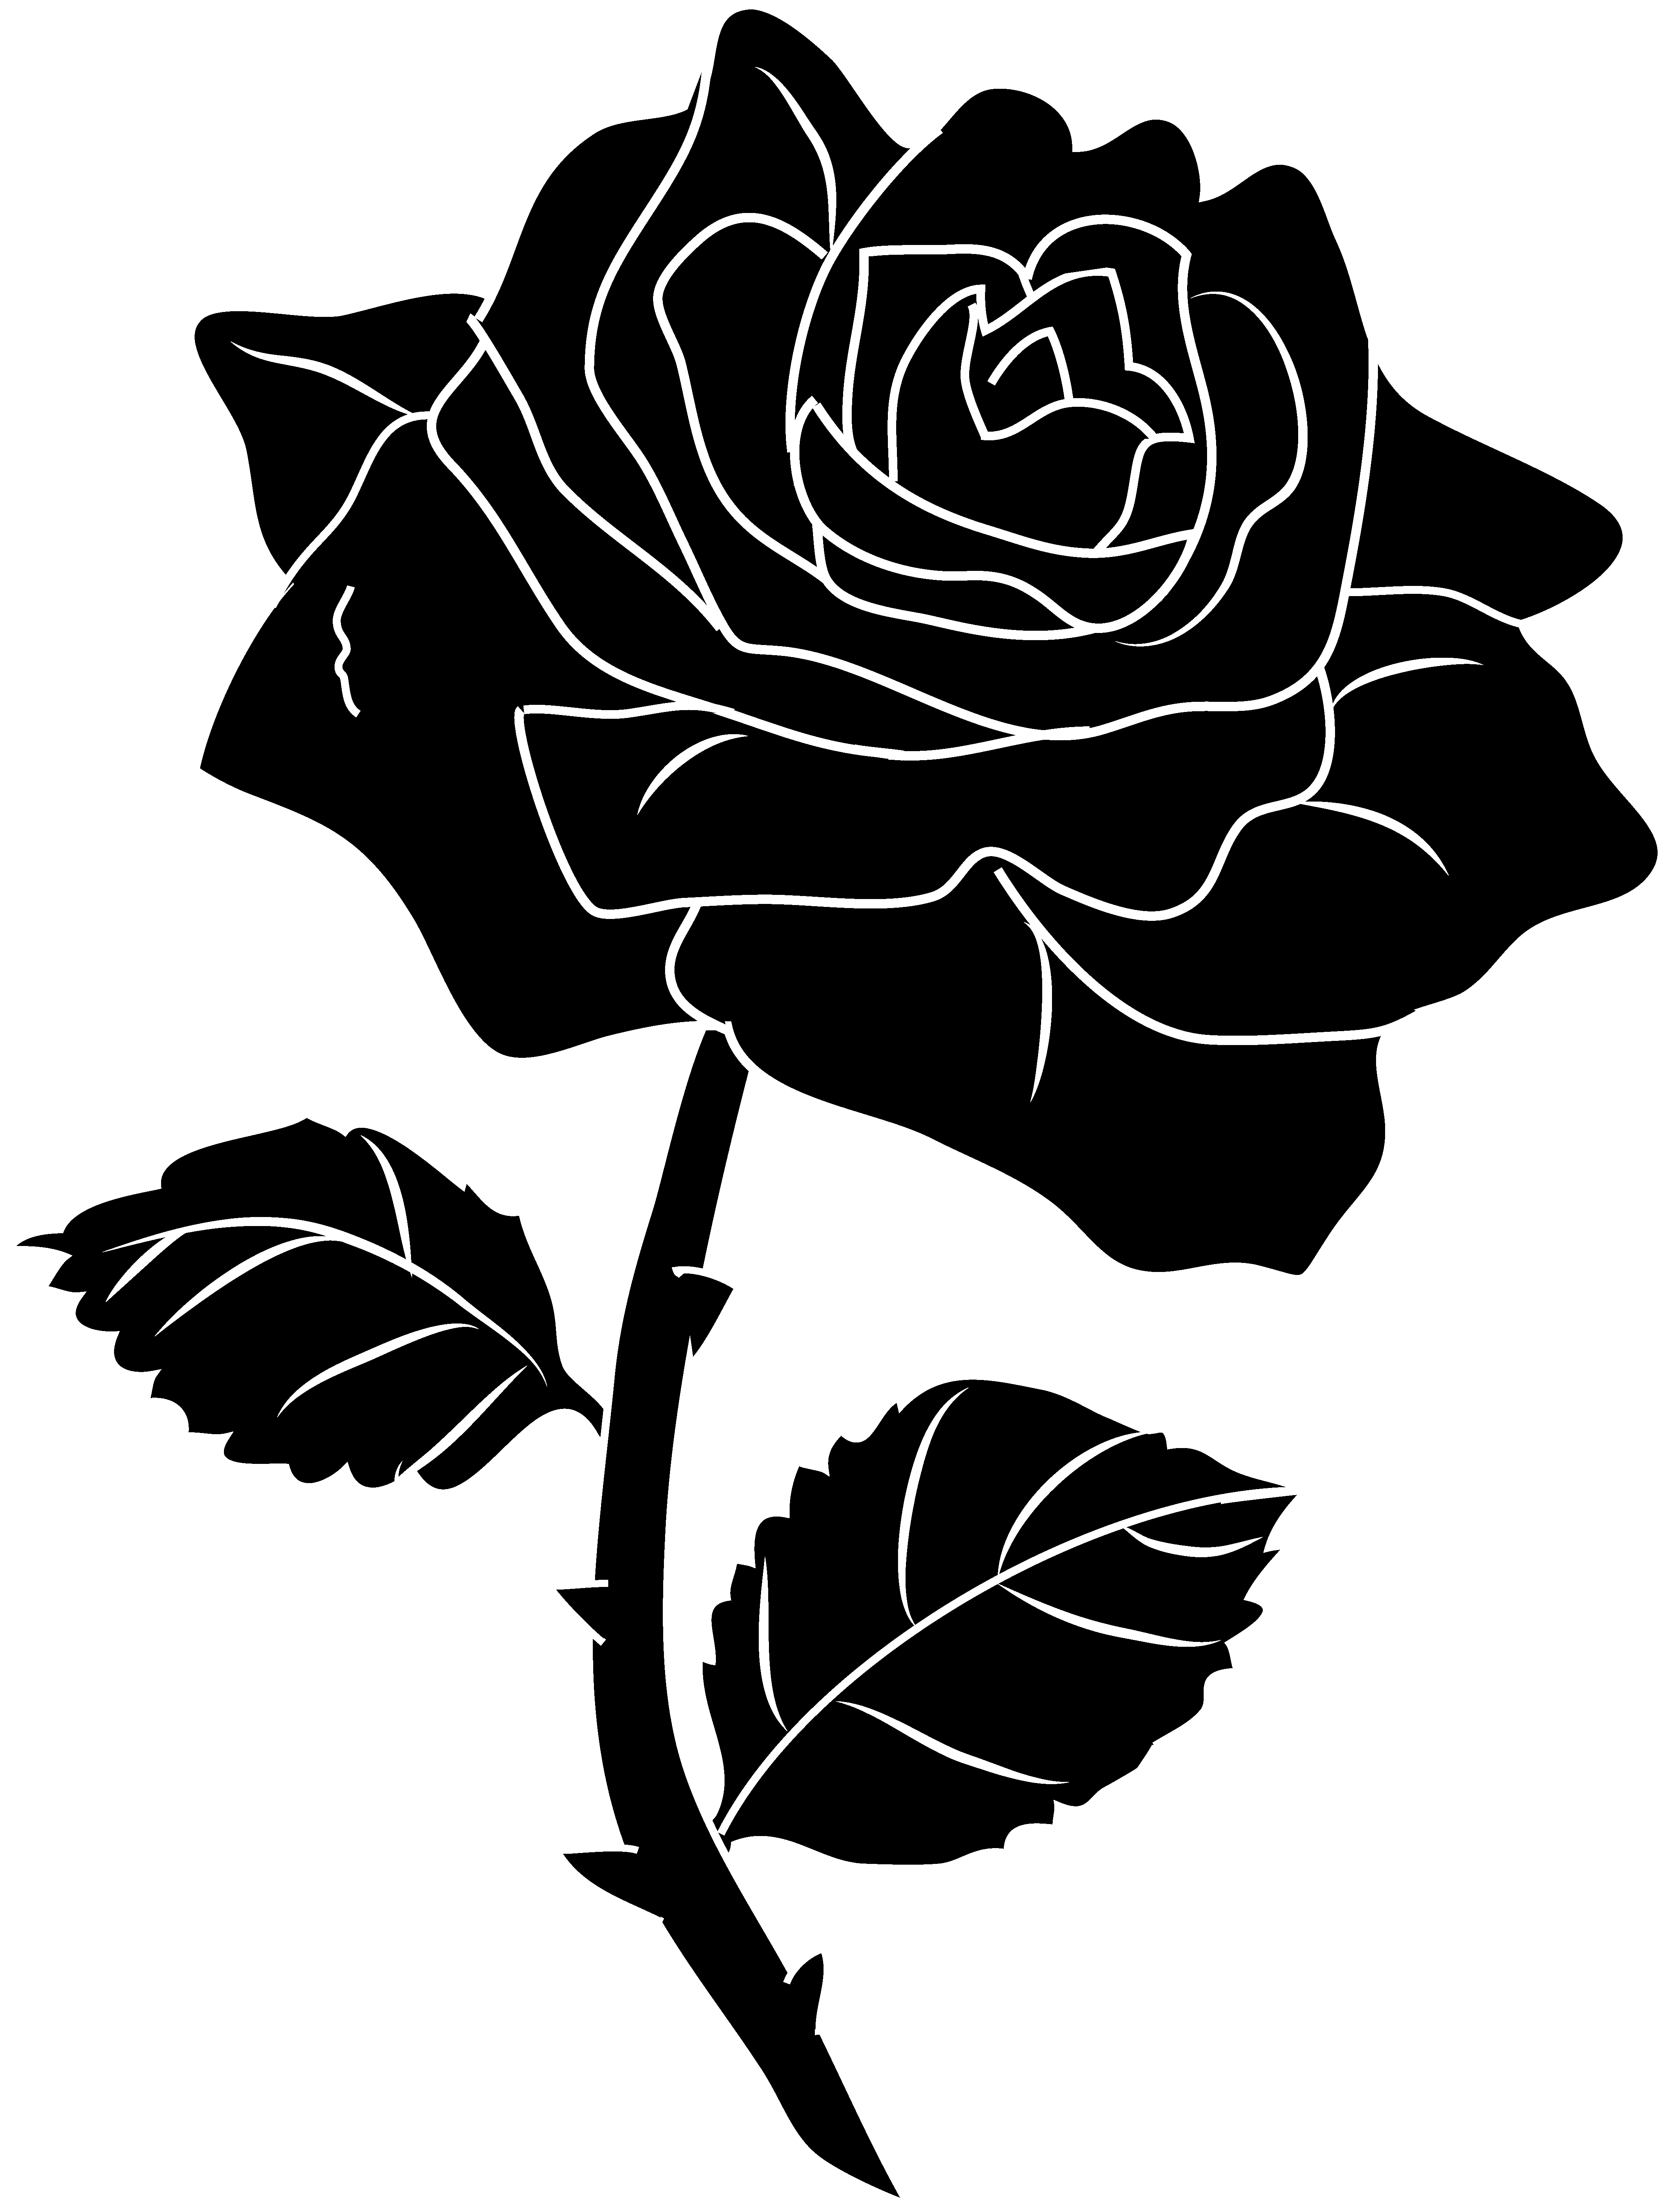 vector royalty free library A clipart rose. Flowers clip art black